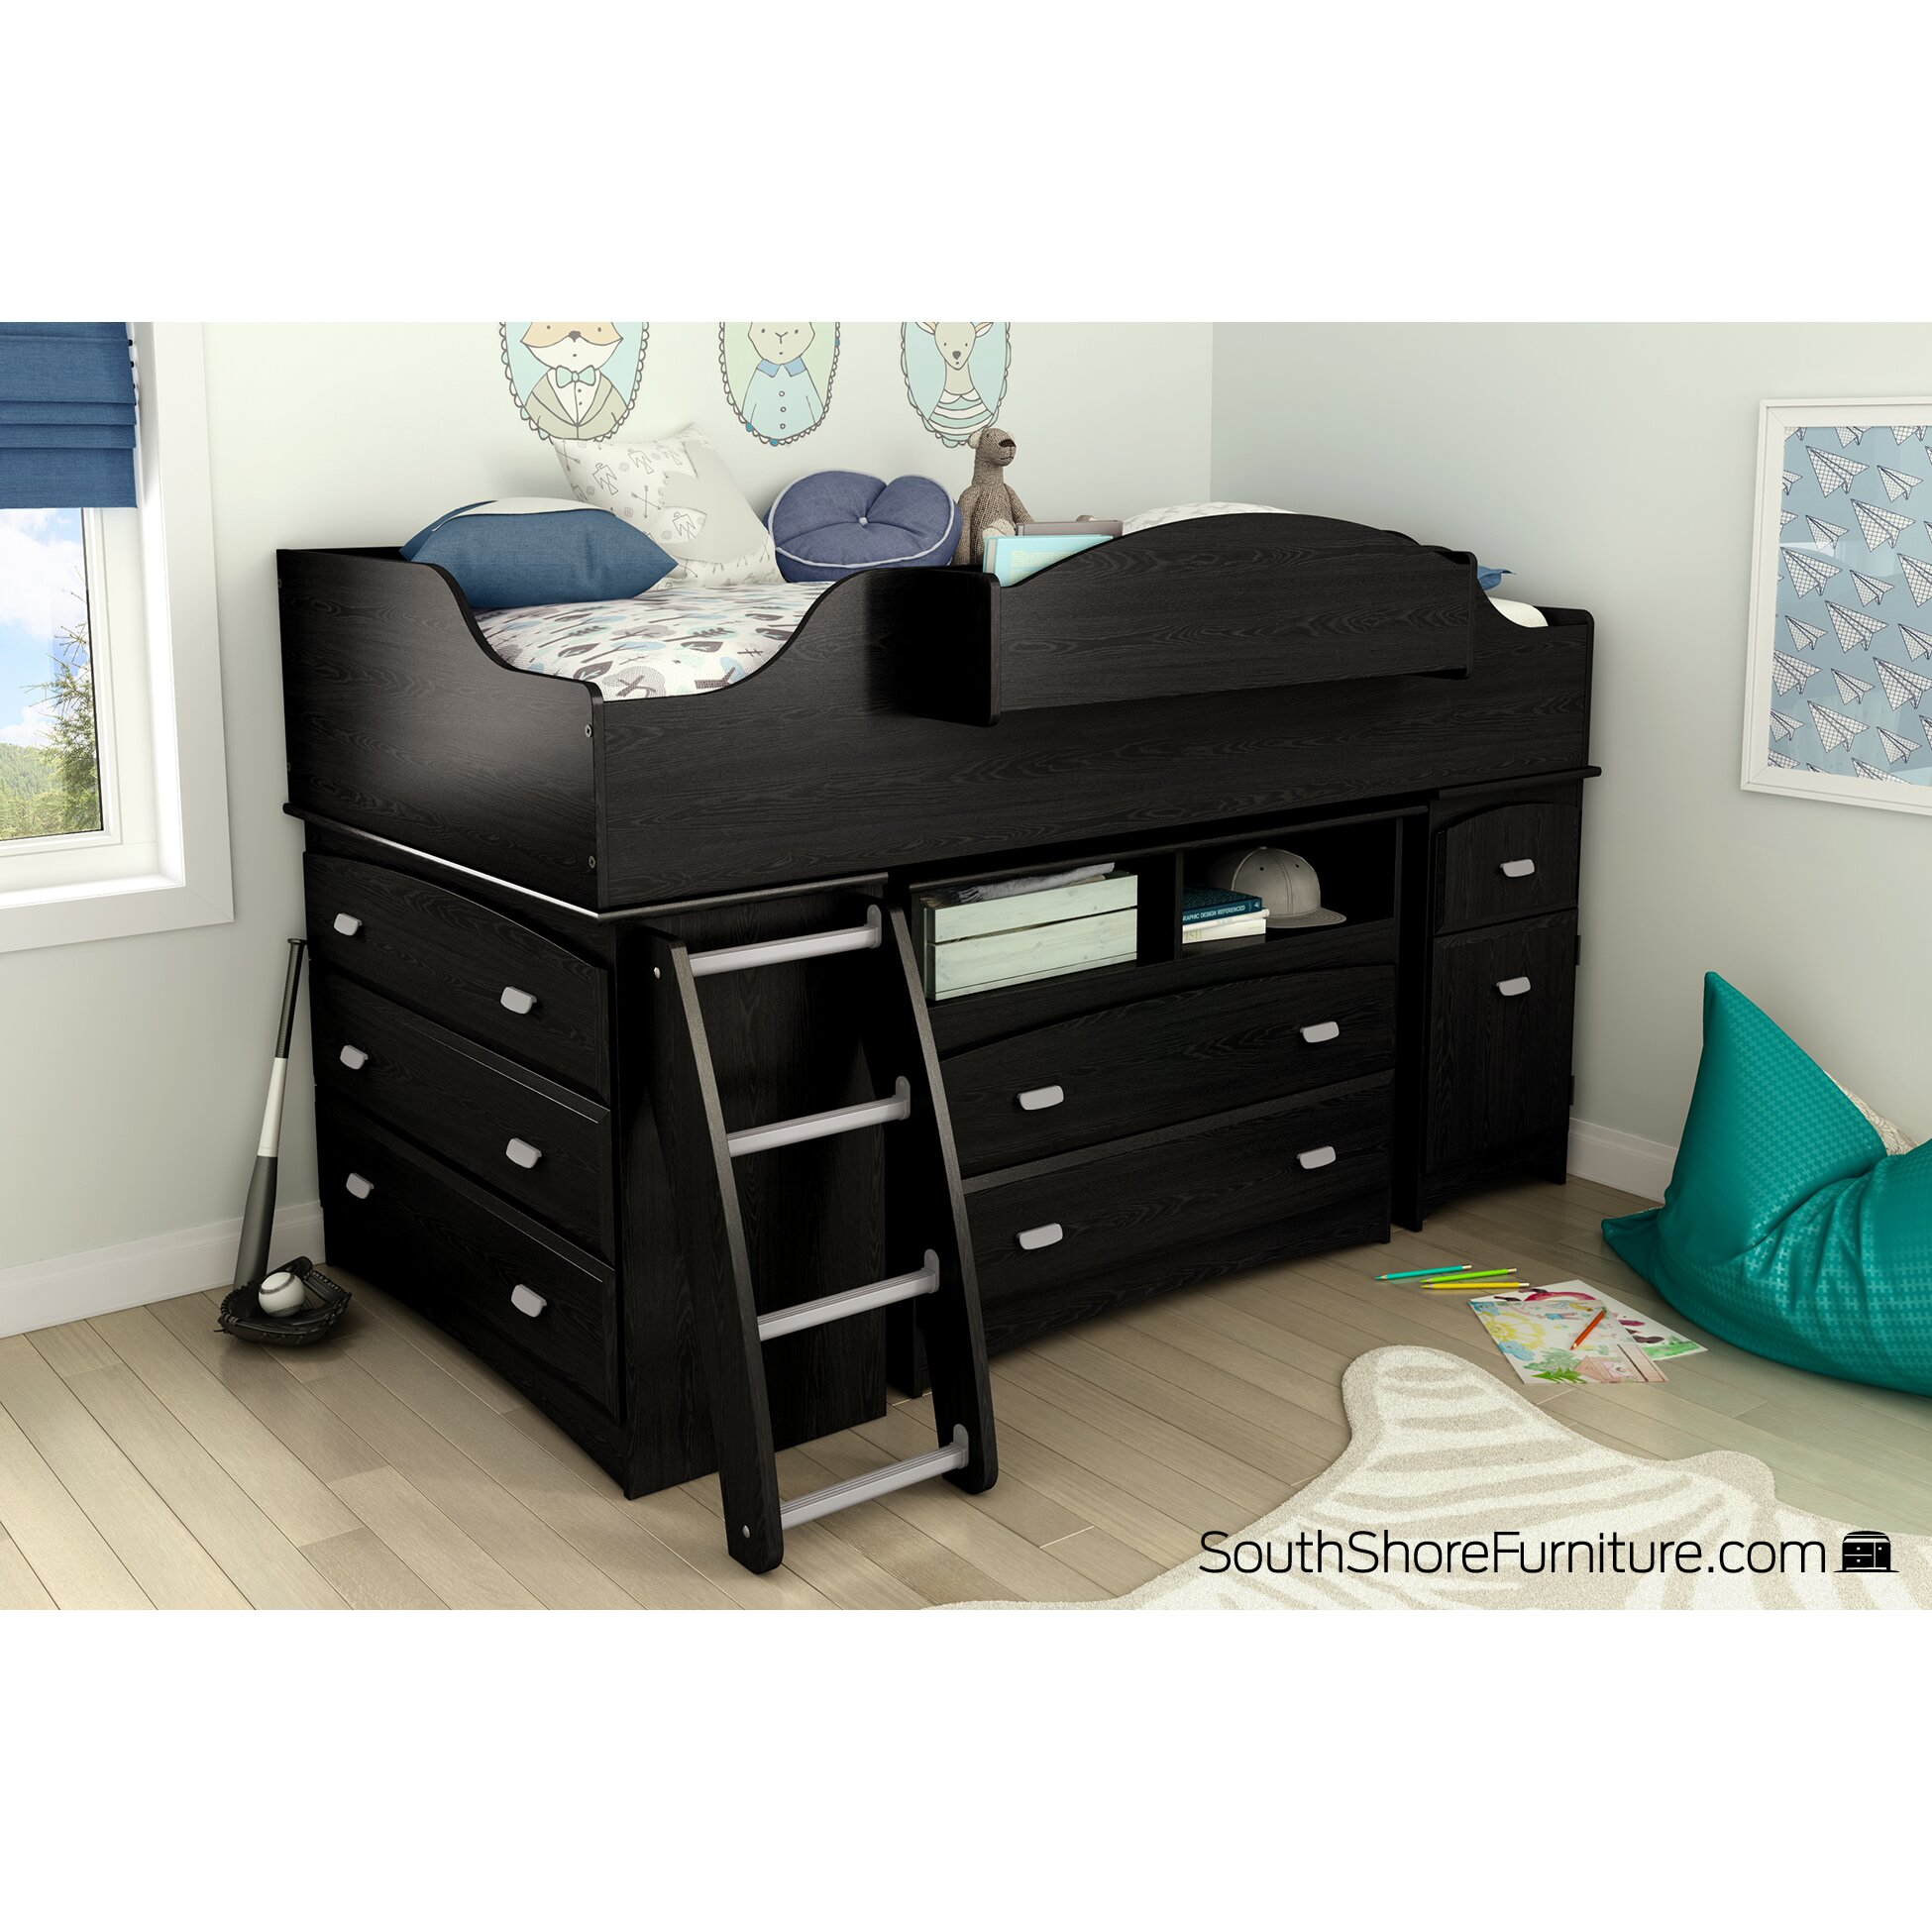 Bedroom Furniture Loft Kids Bedroom Sets South Shore SKU TH4049